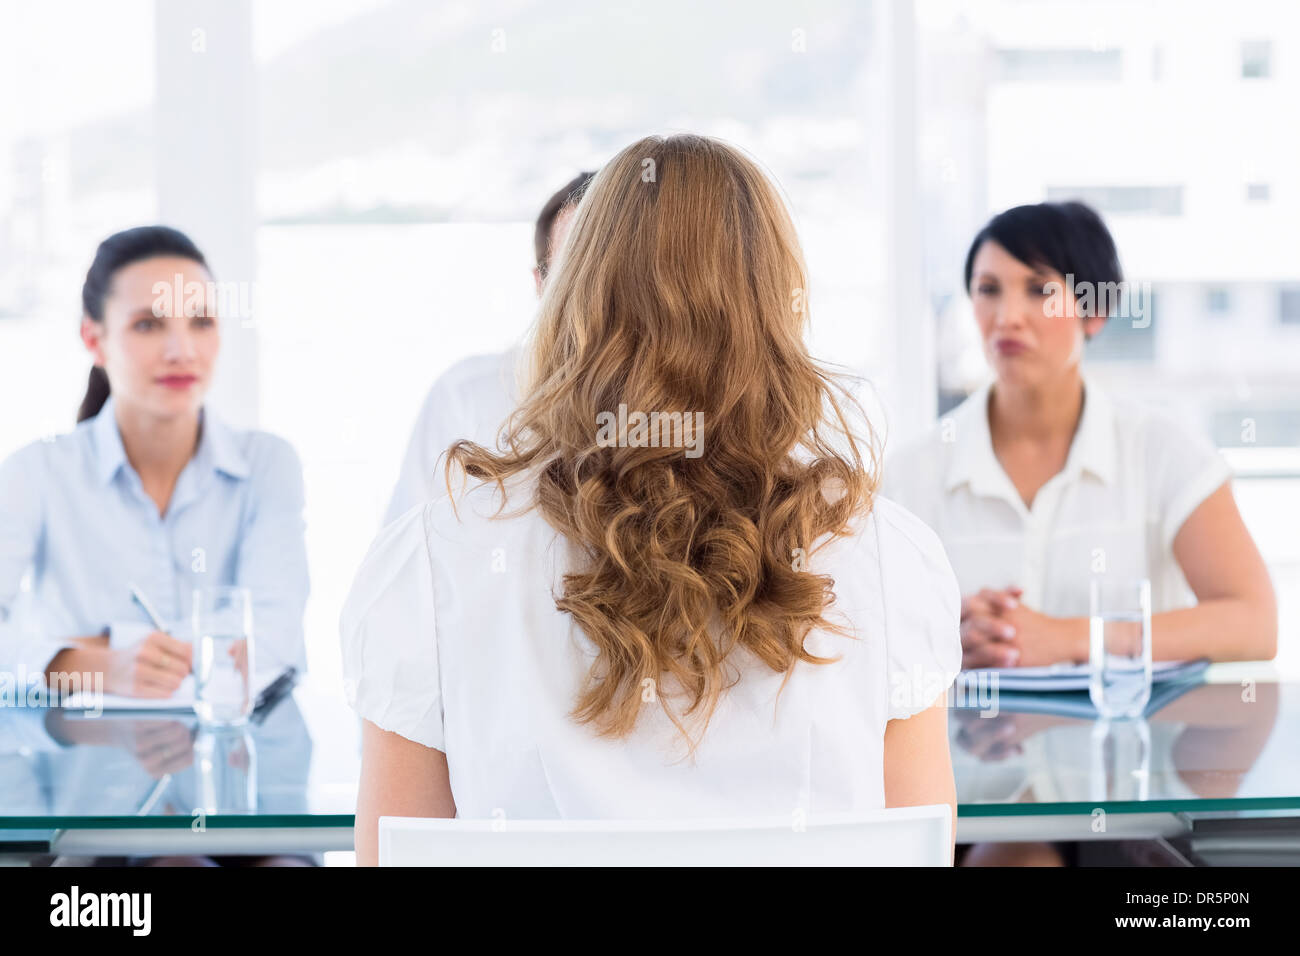 recruiters checking the candidate during job interview stock photo recruiters checking the candidate during job interview